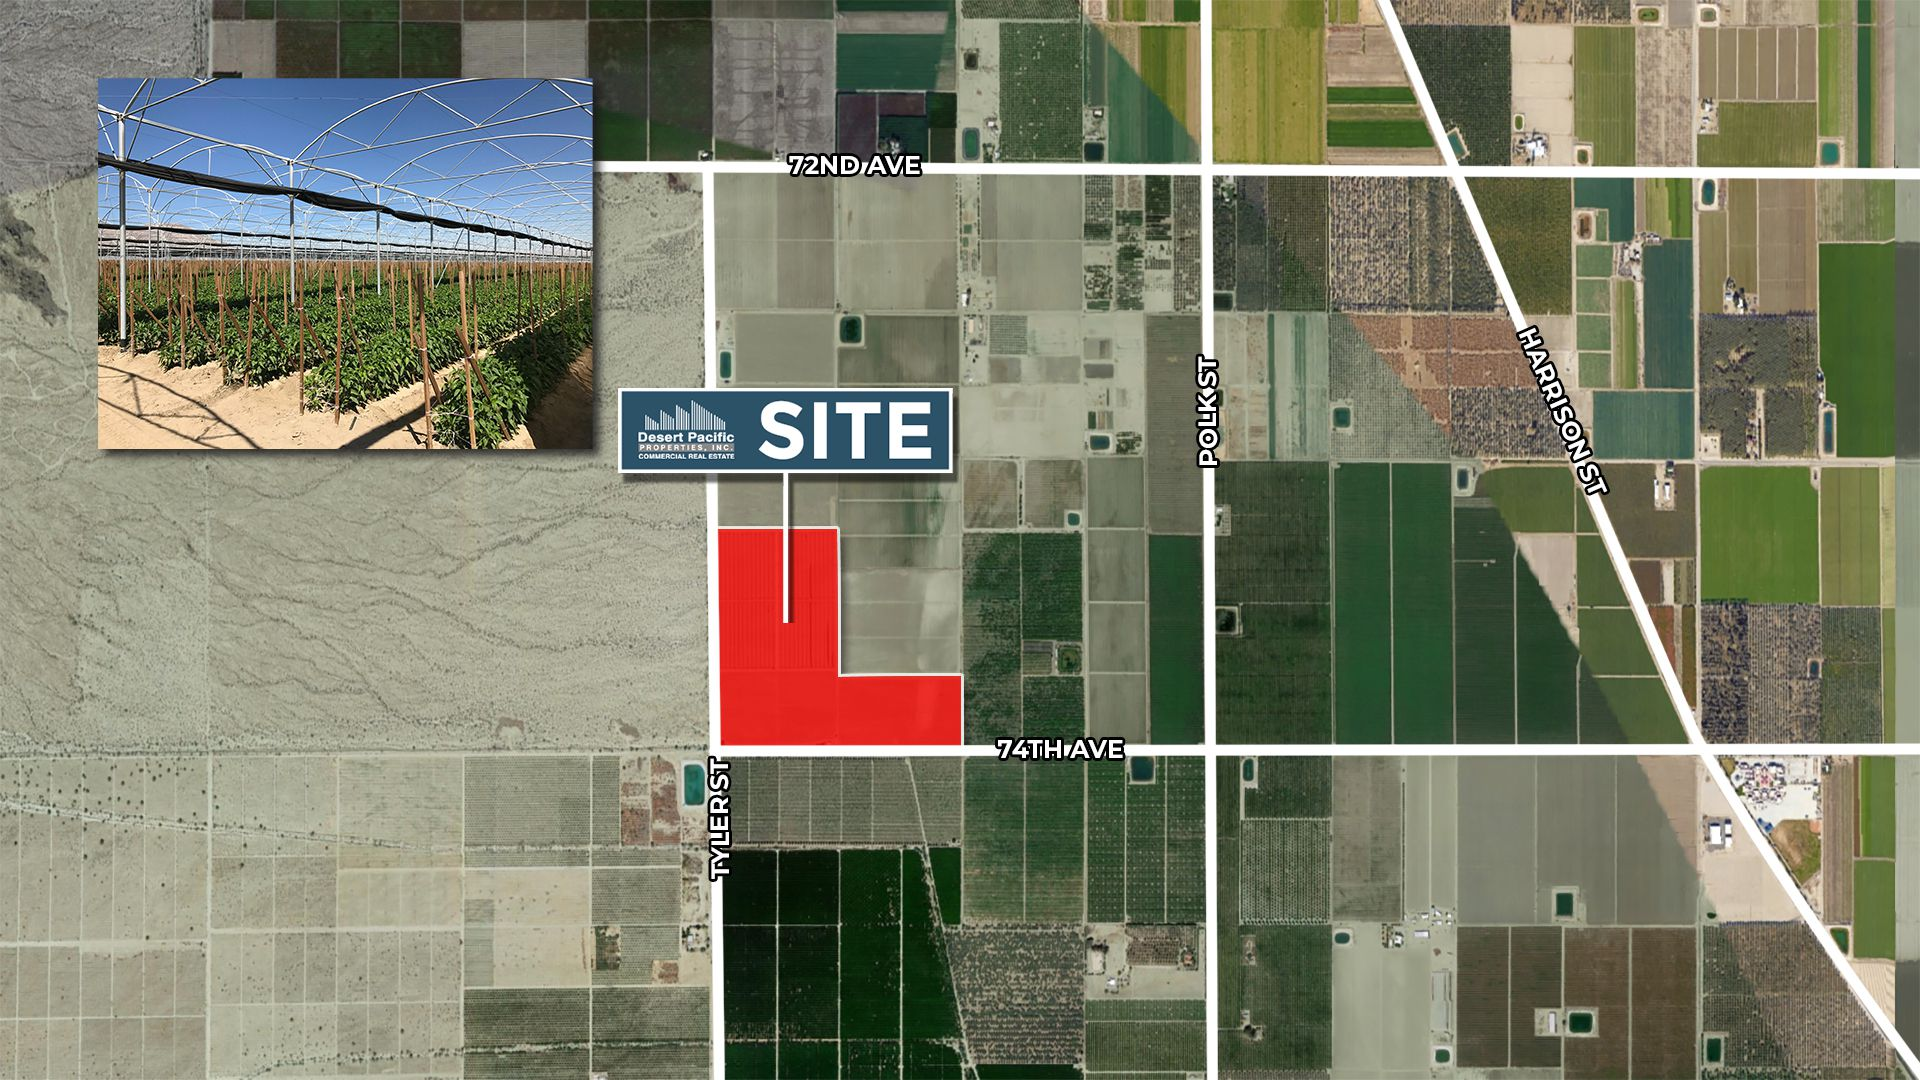 77.88 AC 74th Ave & Tyler St, Oasis Aerial